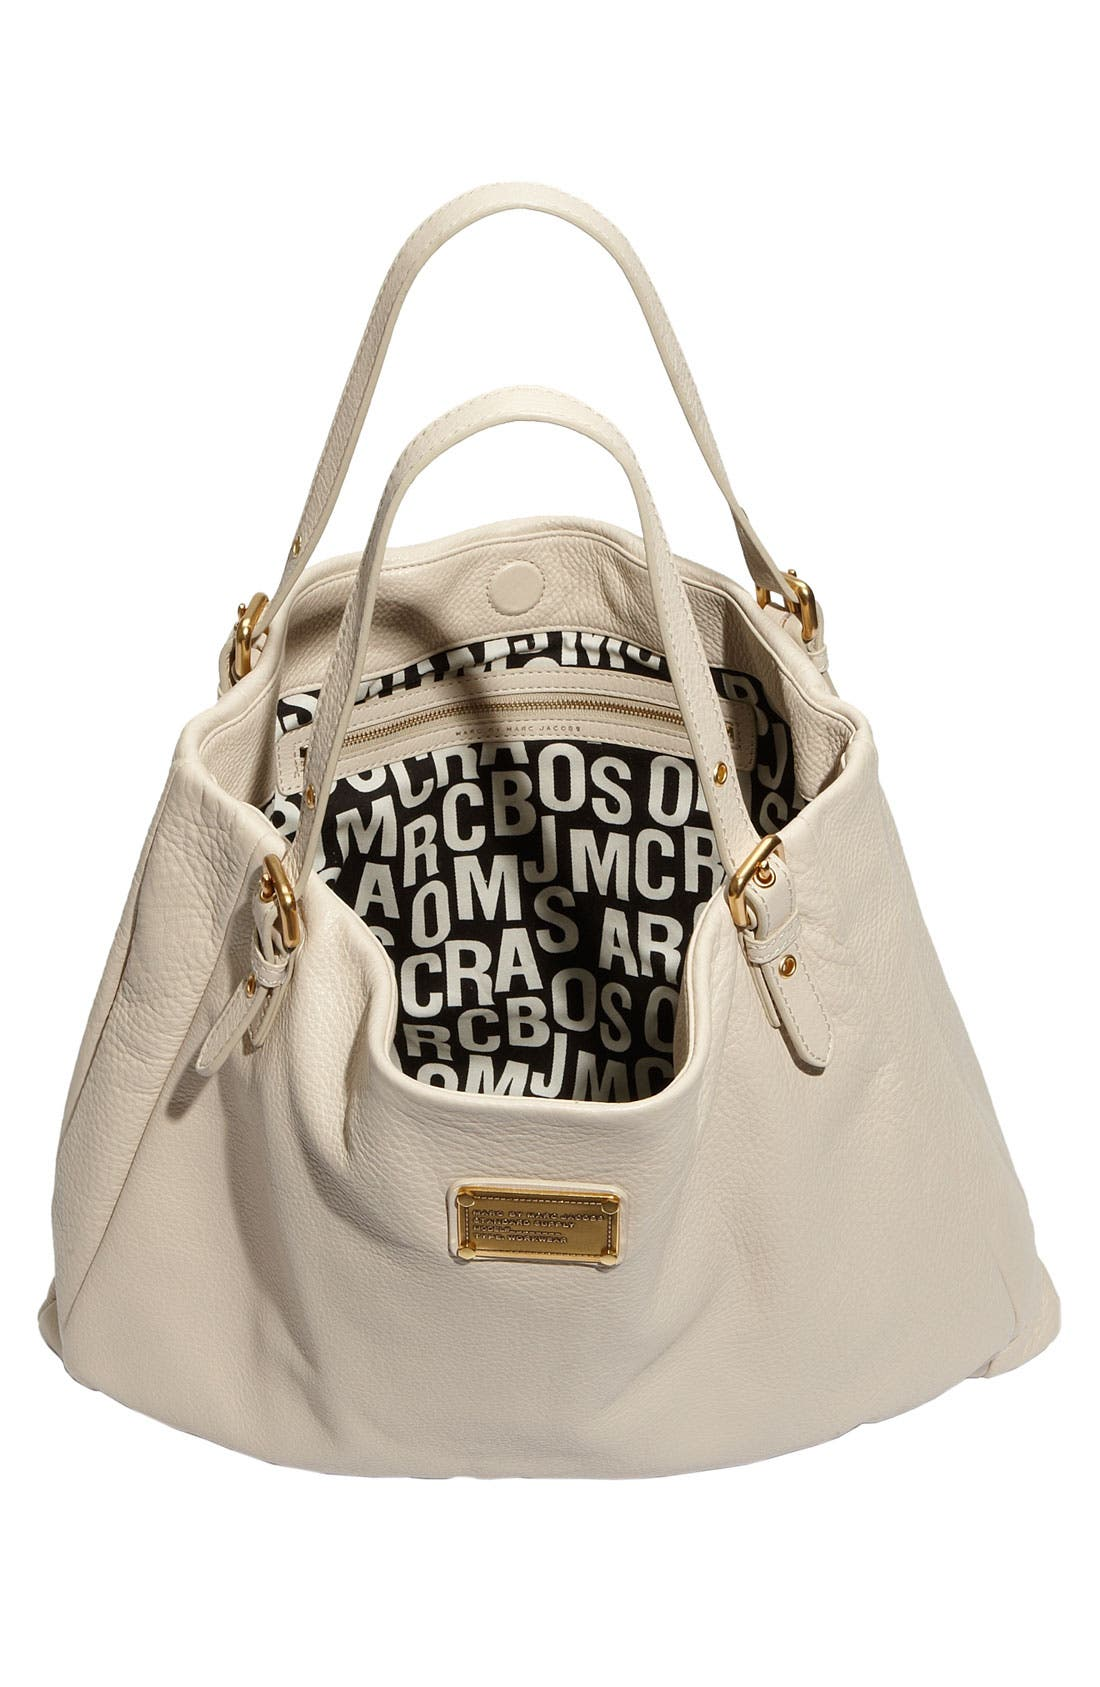 MARC BY MARC JACOBS 'Classic Q - Shopgirl' Leather Tote,                             Alternate thumbnail 8, color,